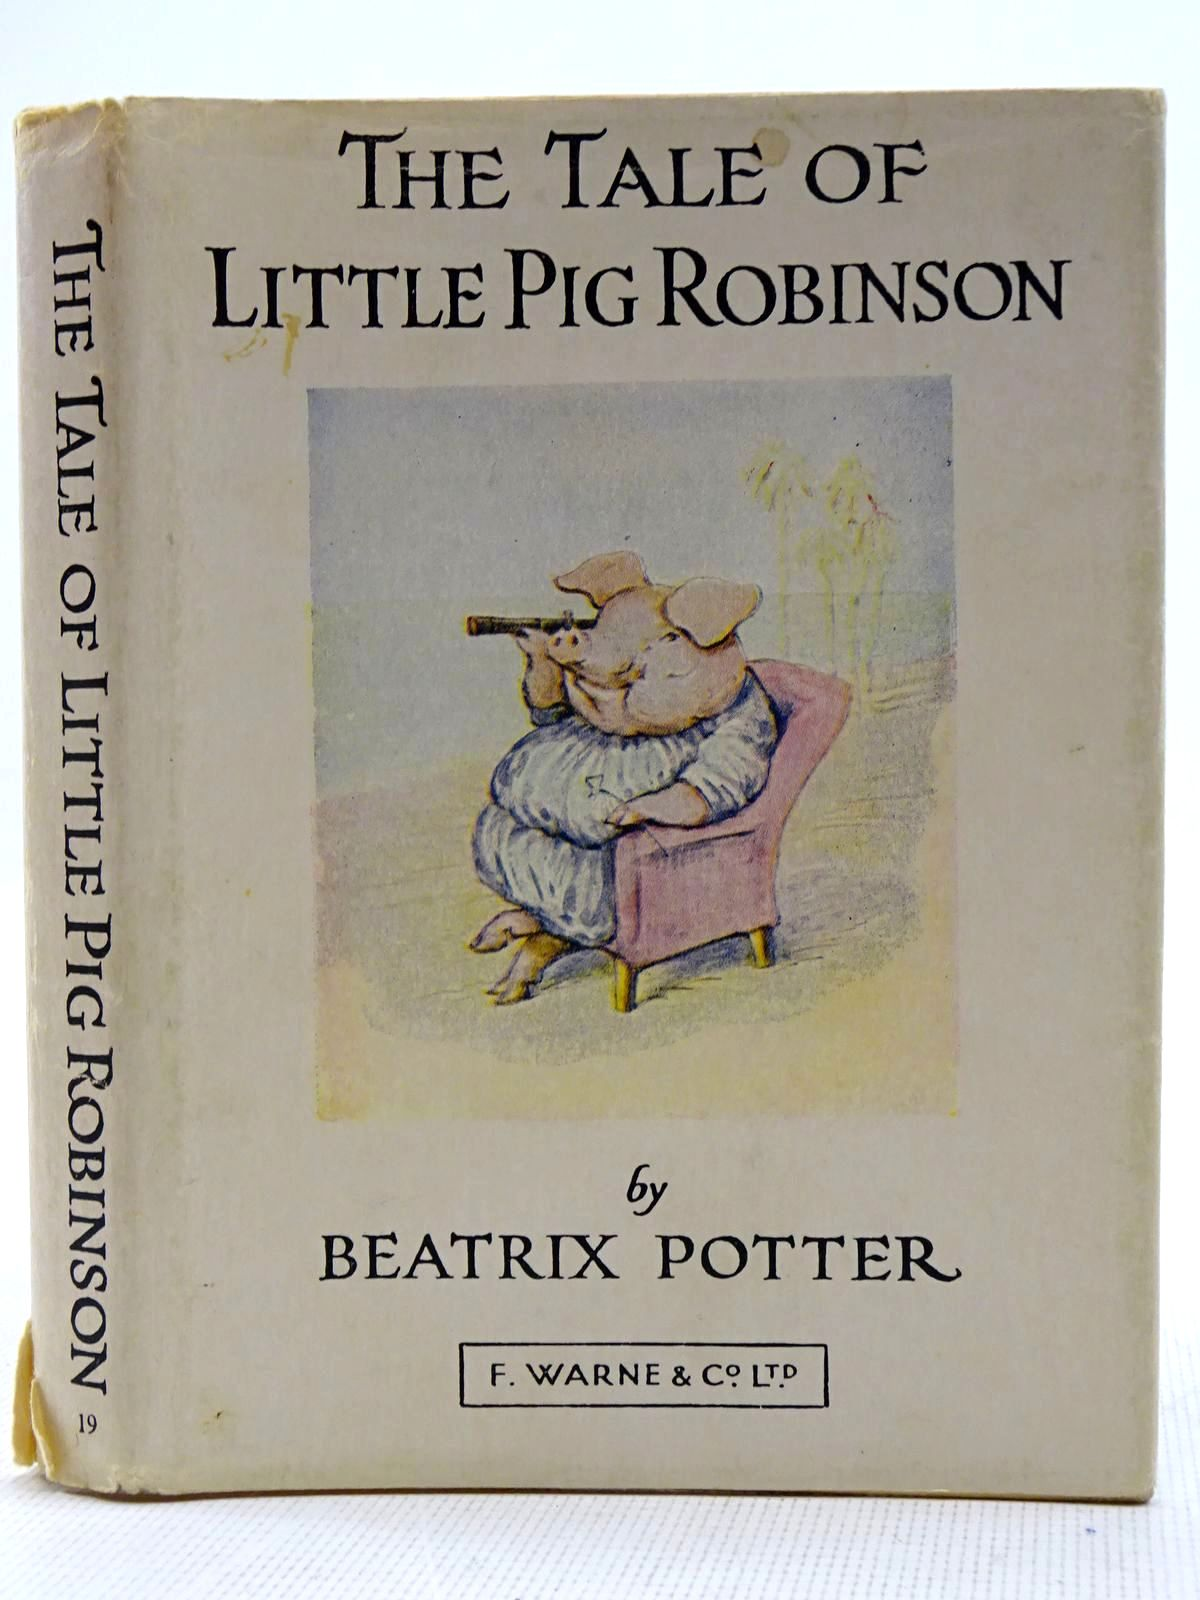 Photo of THE TALE OF LITTLE PIG ROBINSON written by Potter, Beatrix illustrated by Potter, Beatrix published by Frederick Warne & Co Ltd. (STOCK CODE: 2128481)  for sale by Stella & Rose's Books